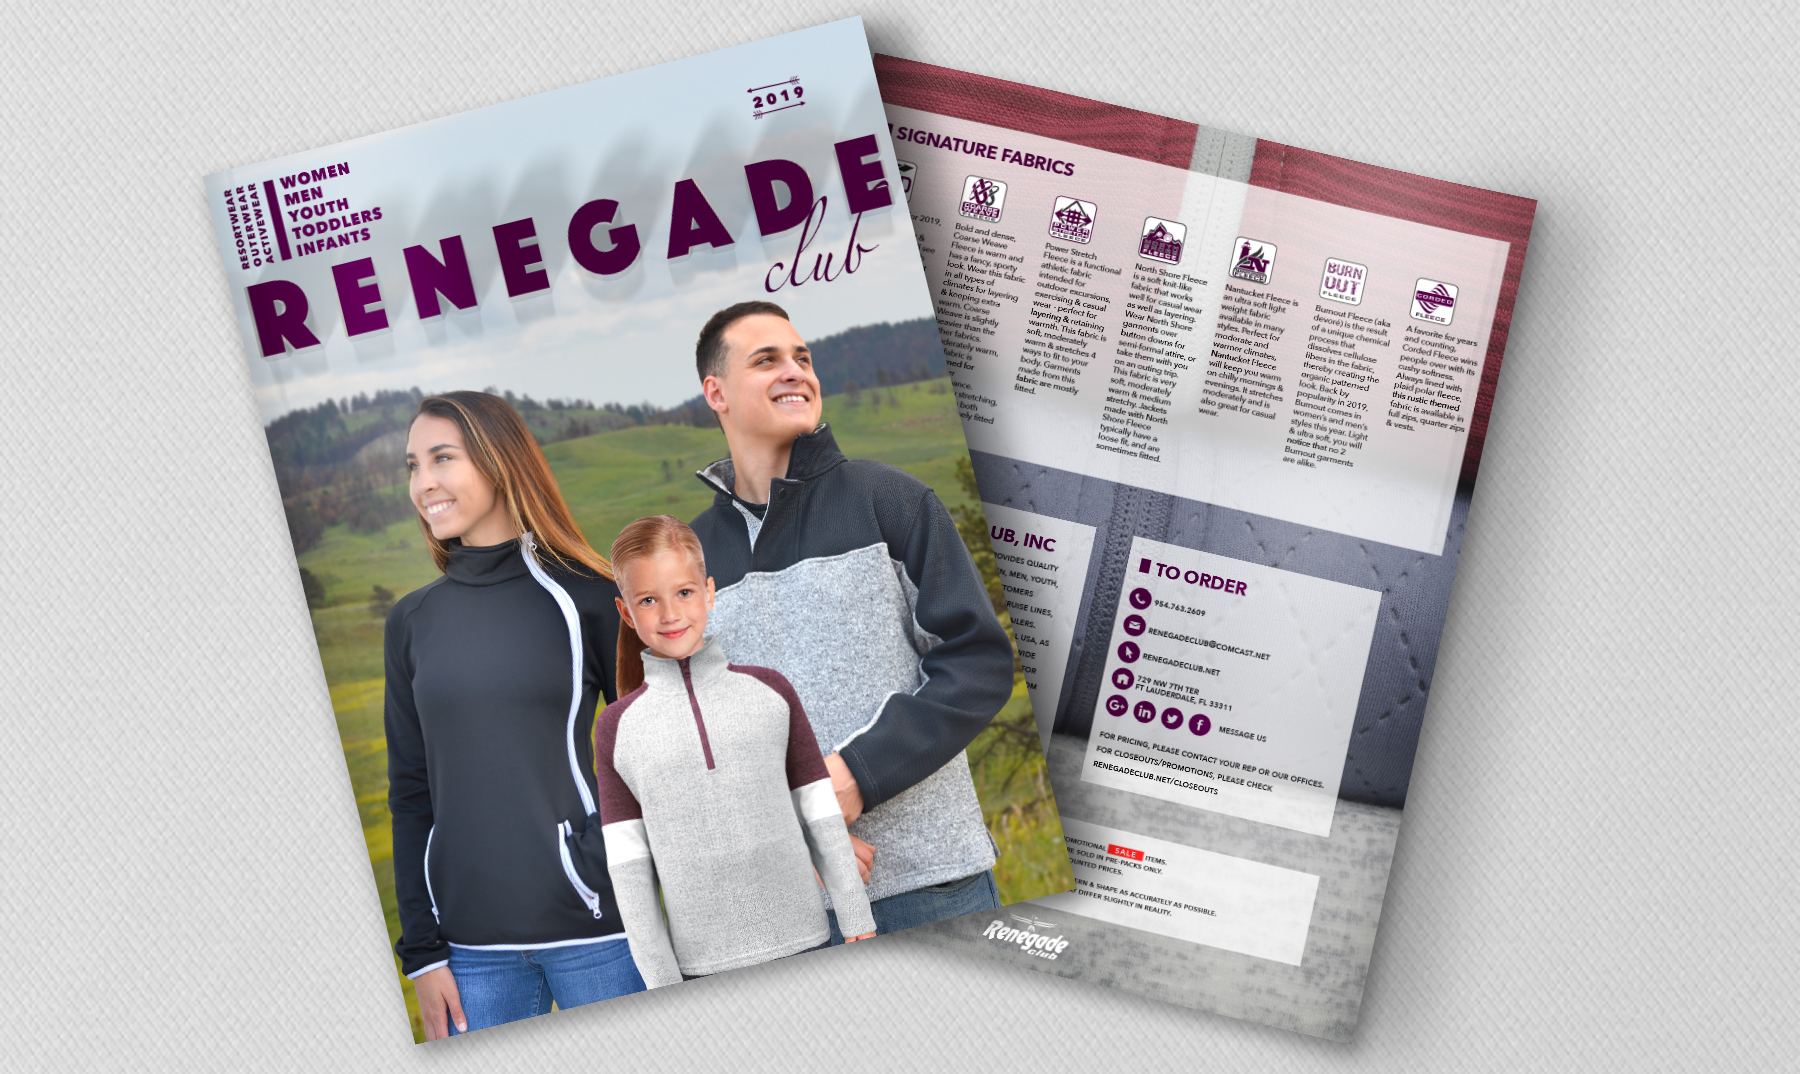 renegade club clothing wholesale catalog, 2019, men, women, kids, black jacket, gray jacket, fleece jacekts